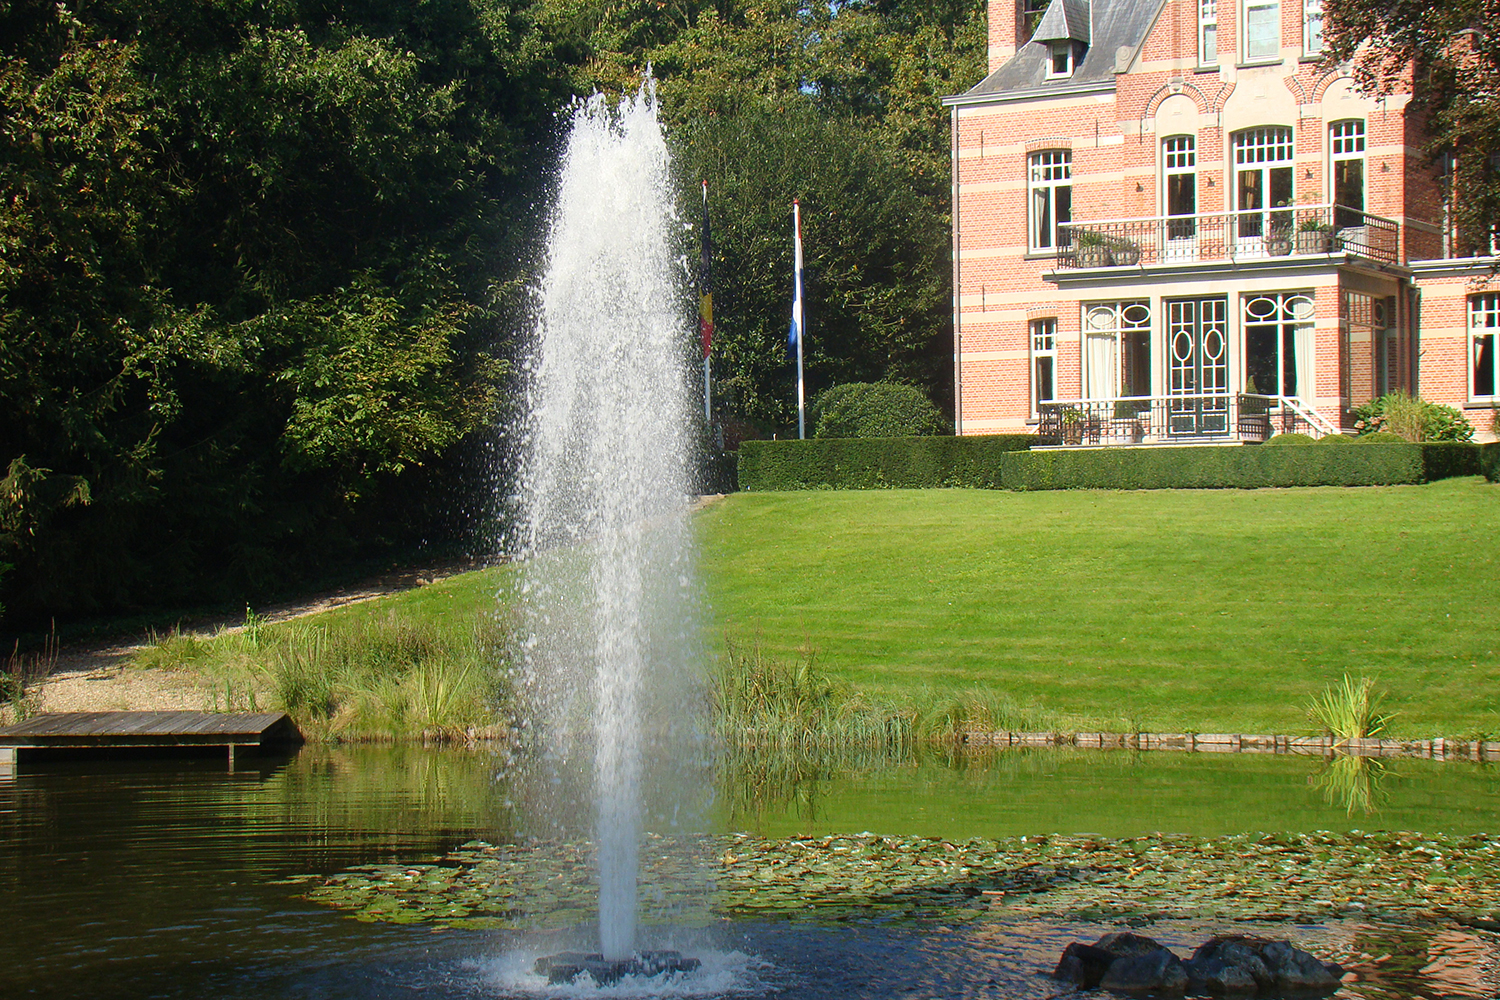 One of Otterbine's Comet Aerating Fountains in a small pond